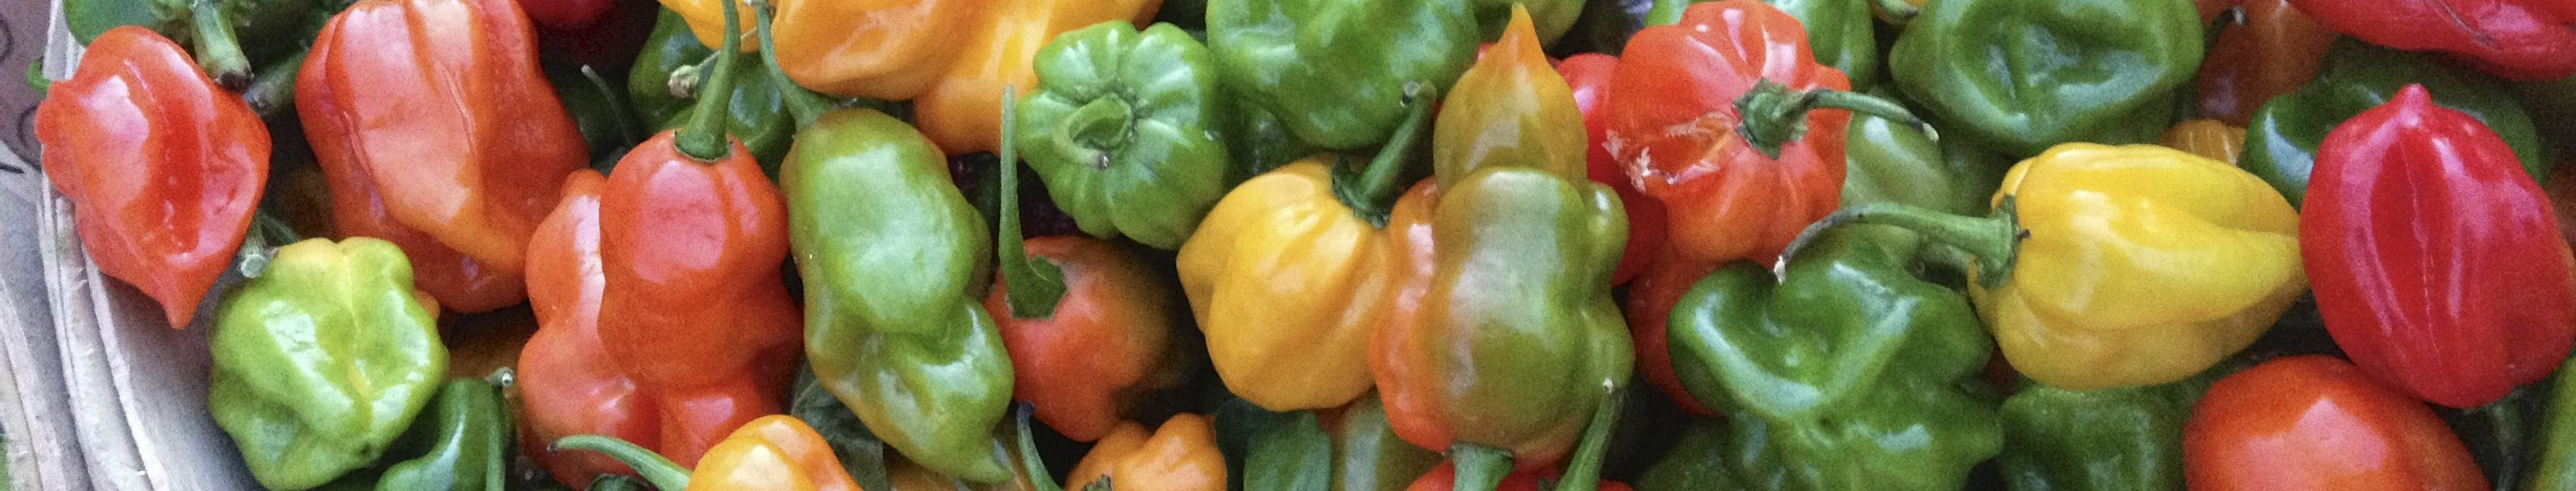 Chile Peppers Bounty | PKWay